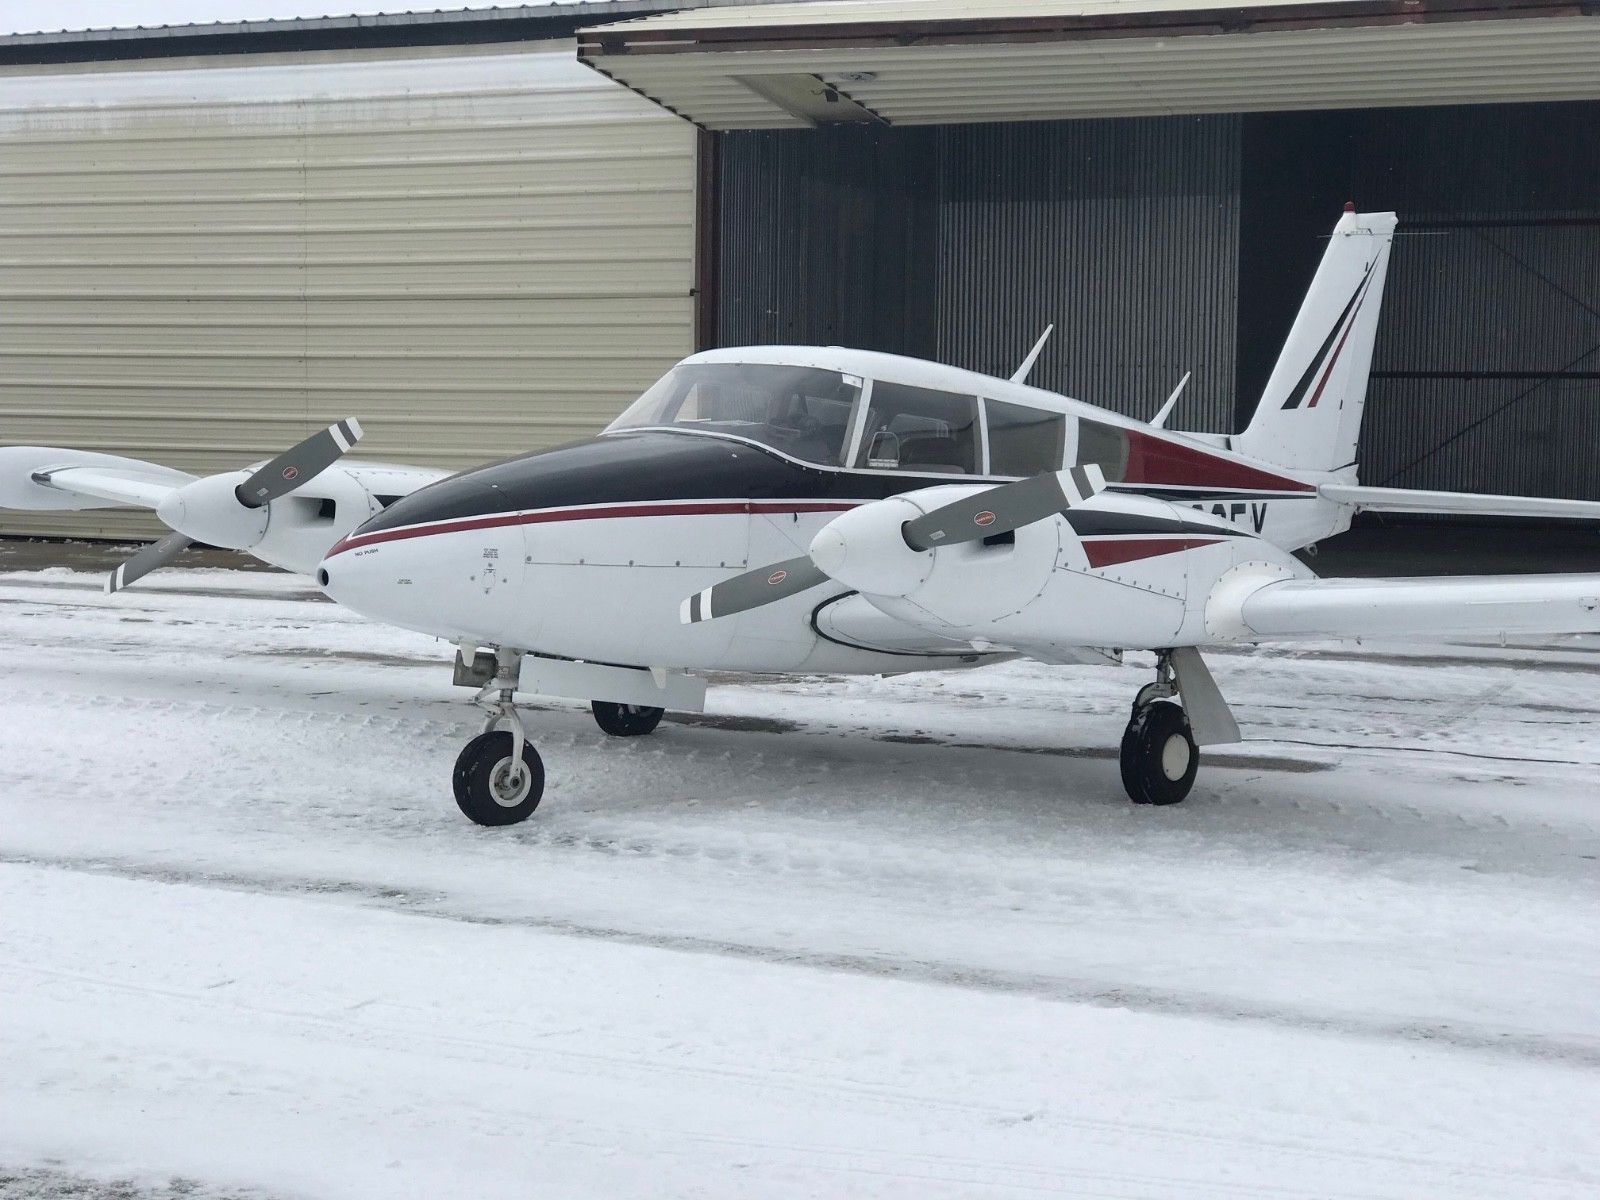 Low Time 1966 Piper Twin Comanche aircraft for sale